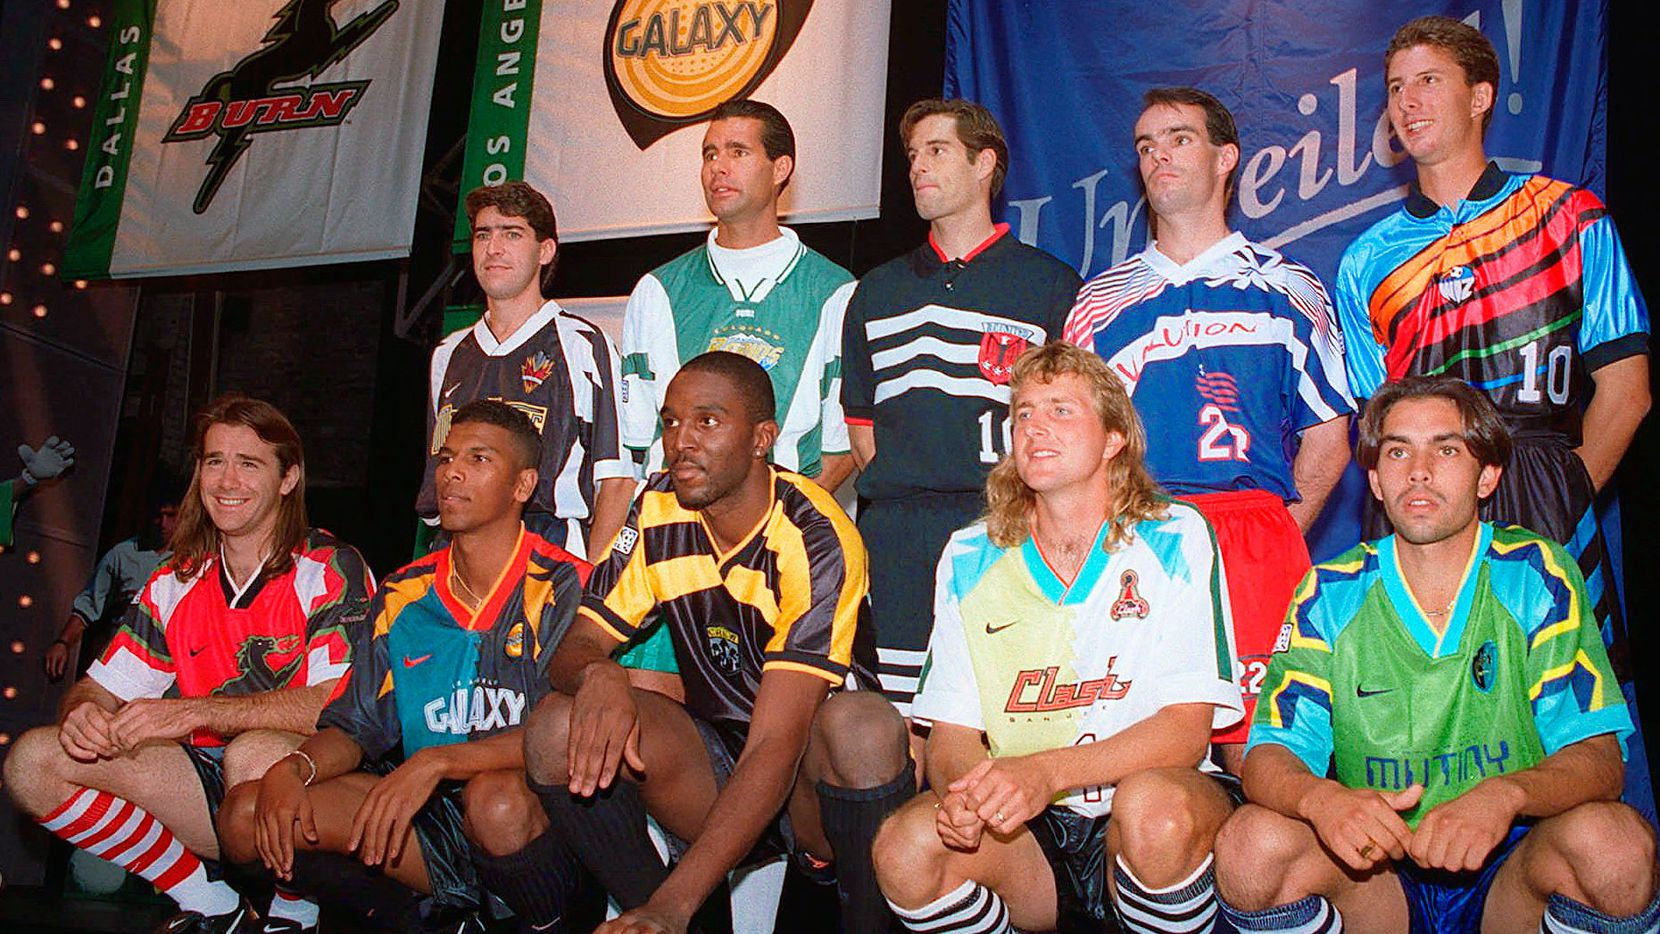 """The original 1996 MLS jersey debut.  Back row, left to right: Tab Ramos (NY/NJ MetroStars), Roy Wegerle (Colorado Rapids), John Harkes (DC United), MIke Burns (New England Revolution), and MIke Sorber (Kansas City Wiz).  The front row are """"models"""" hired for the event to represent: Dallas Burn, LA Galaxy, Columbus Crew, San Jose Clash, Tampa Bay Mutiny."""